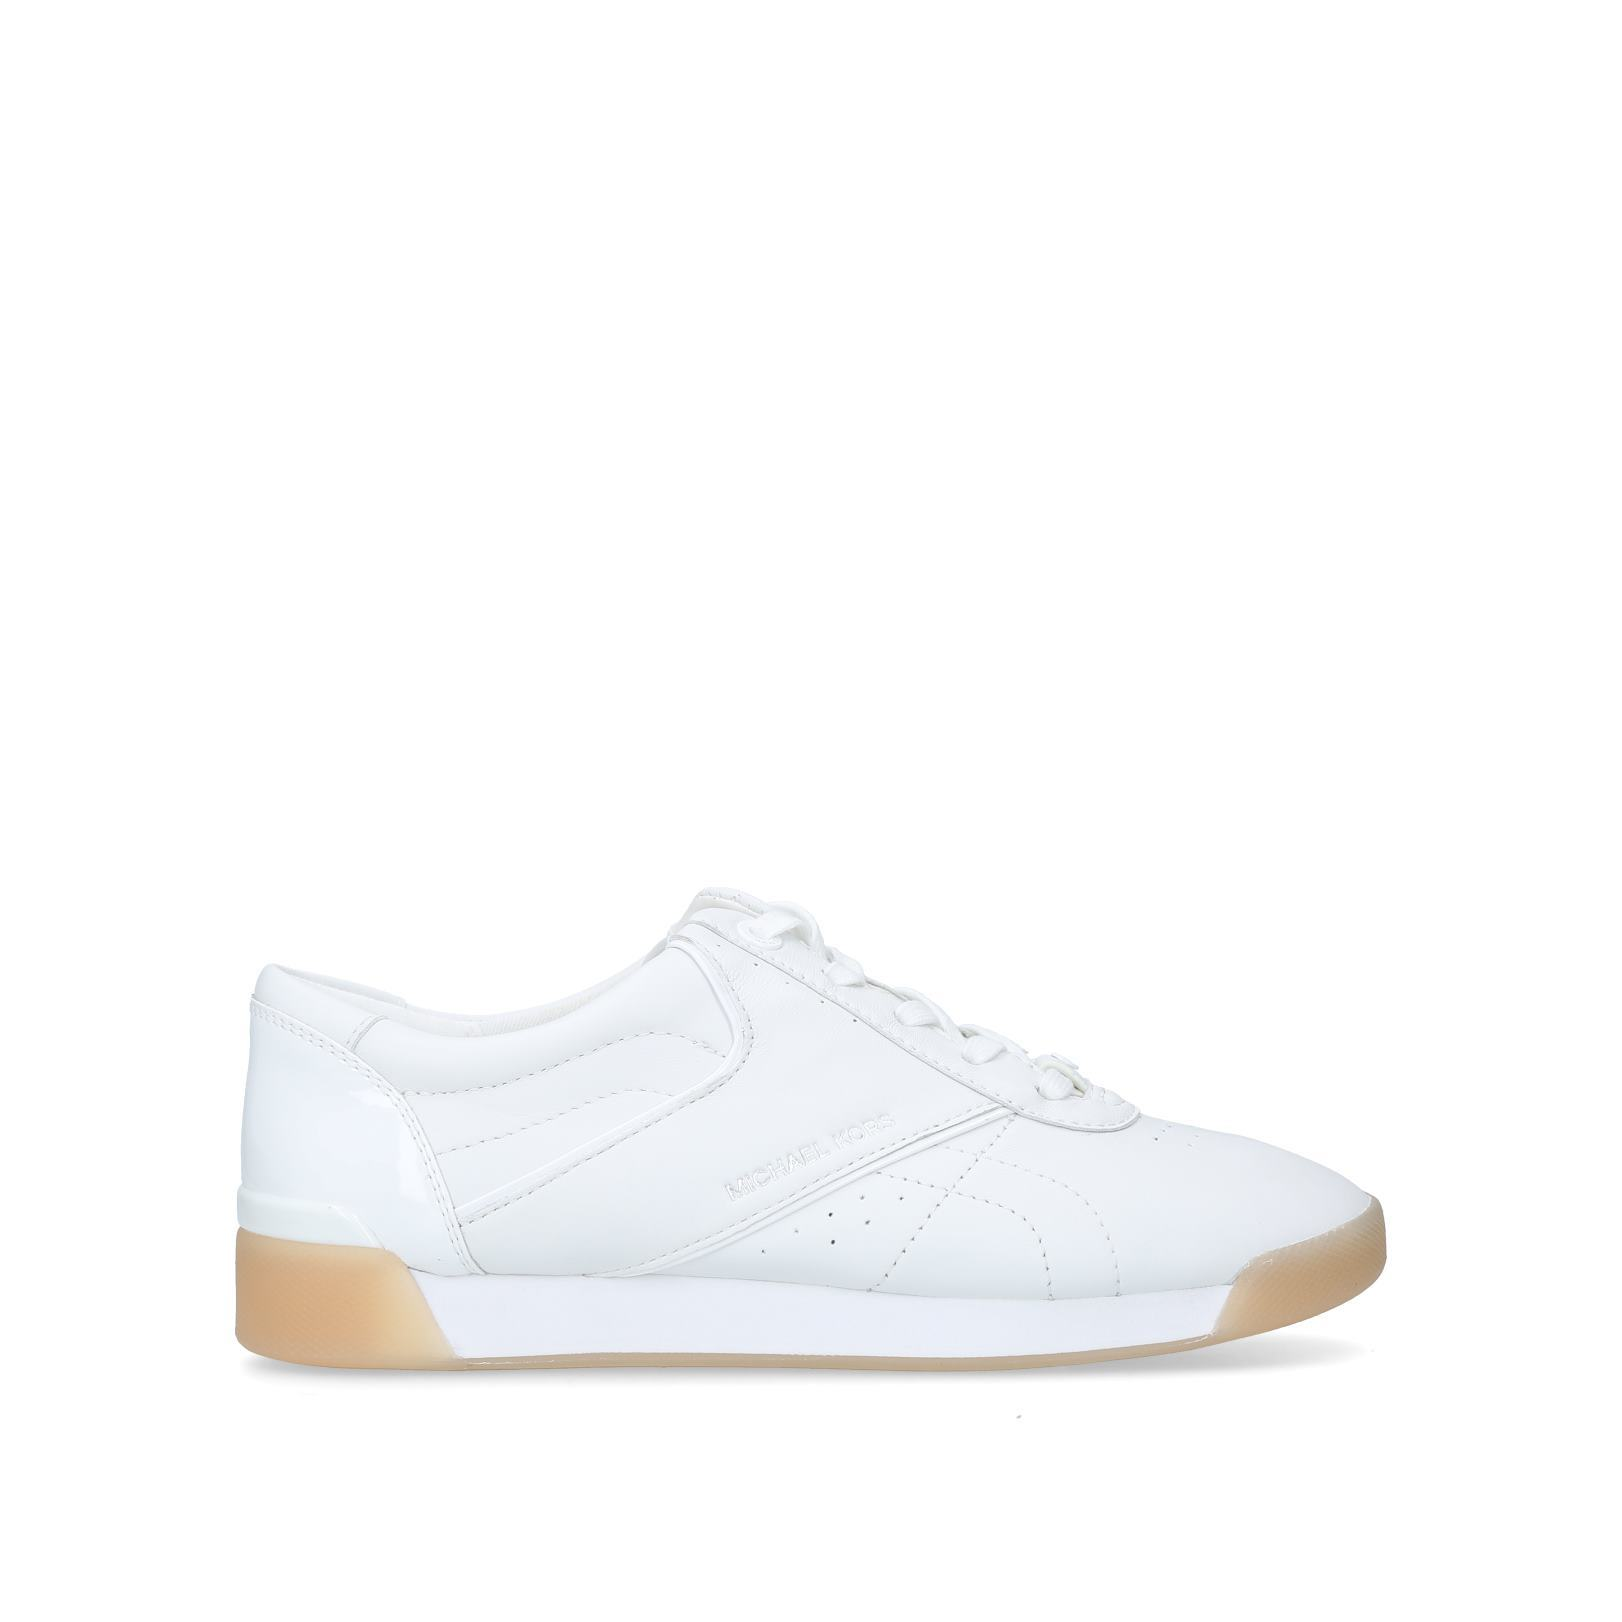 39f51ebeb0 ADDIE LACE UP Addie Lace Up No Heel Sneakers Michael Michael Kors White by  MICHAEL MICHAEL KORS